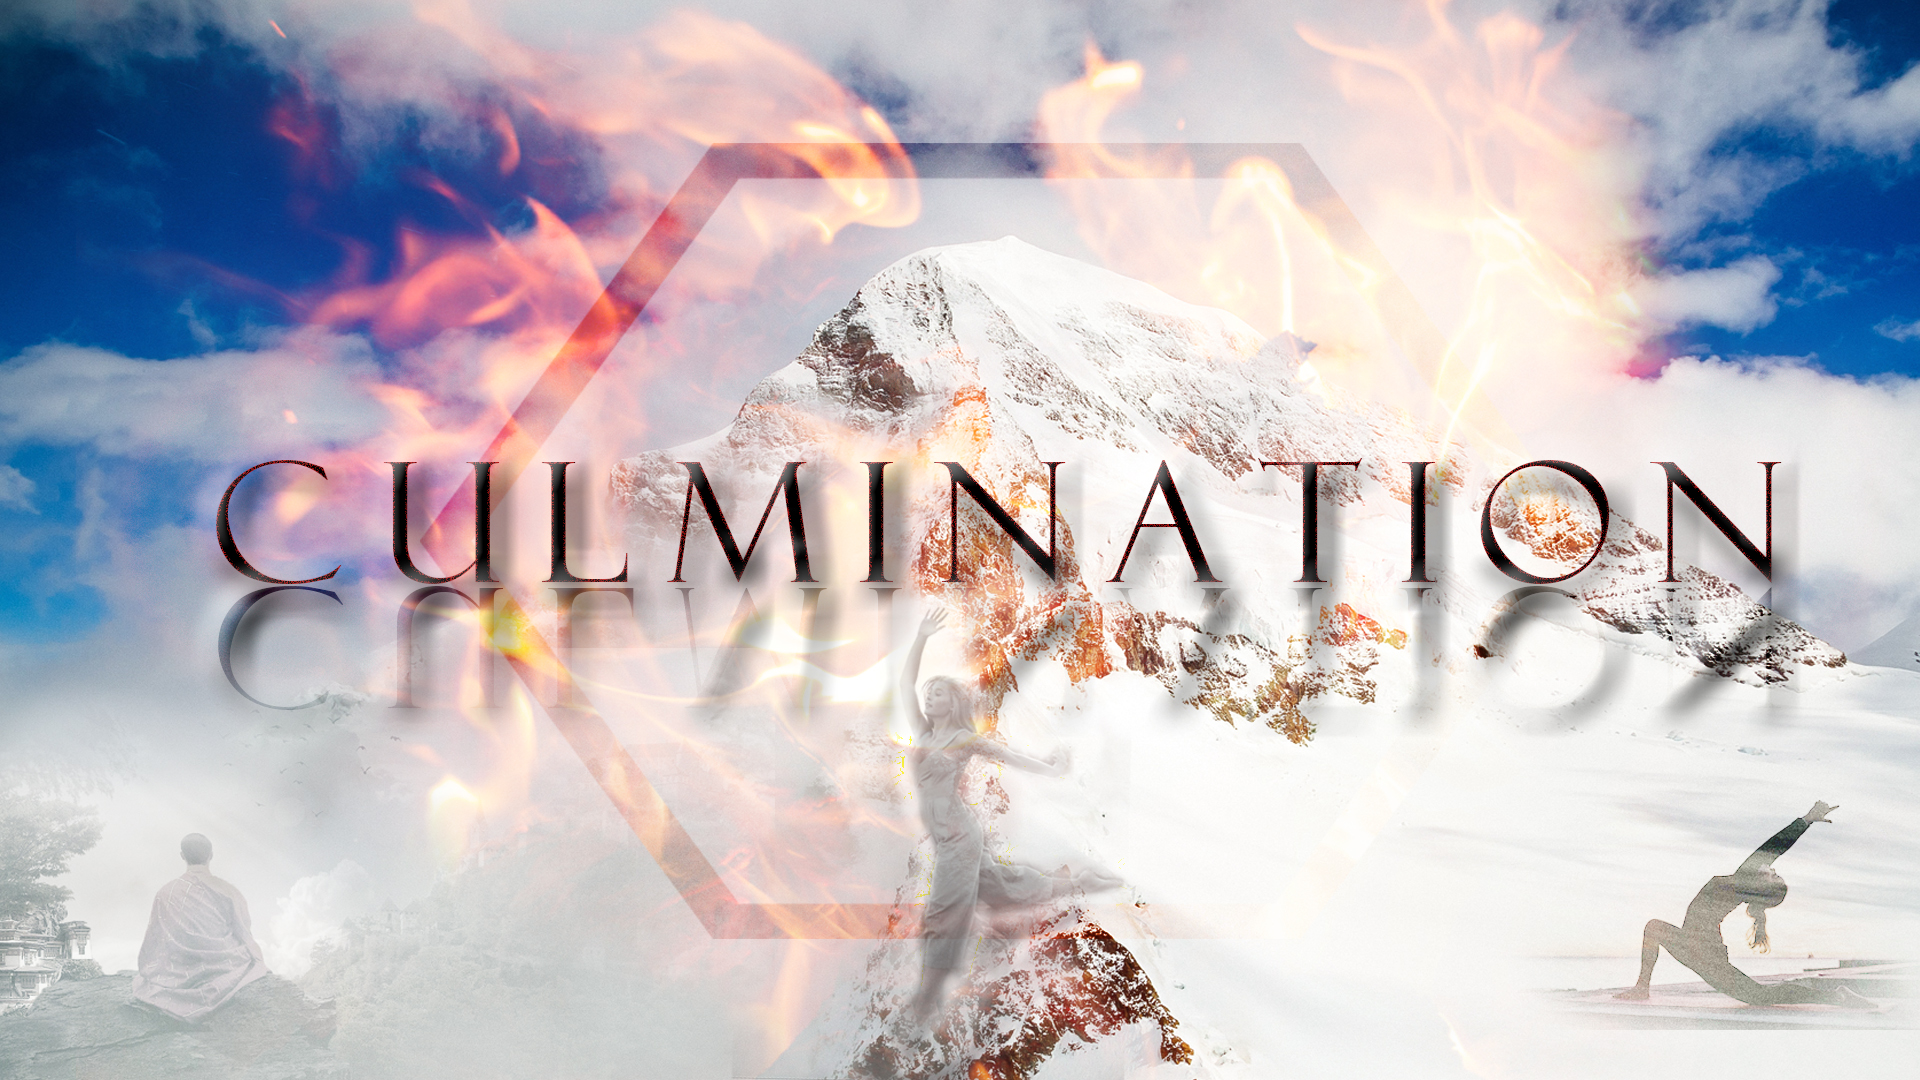 Culmination_Cover_1920by1080_Title.jpg